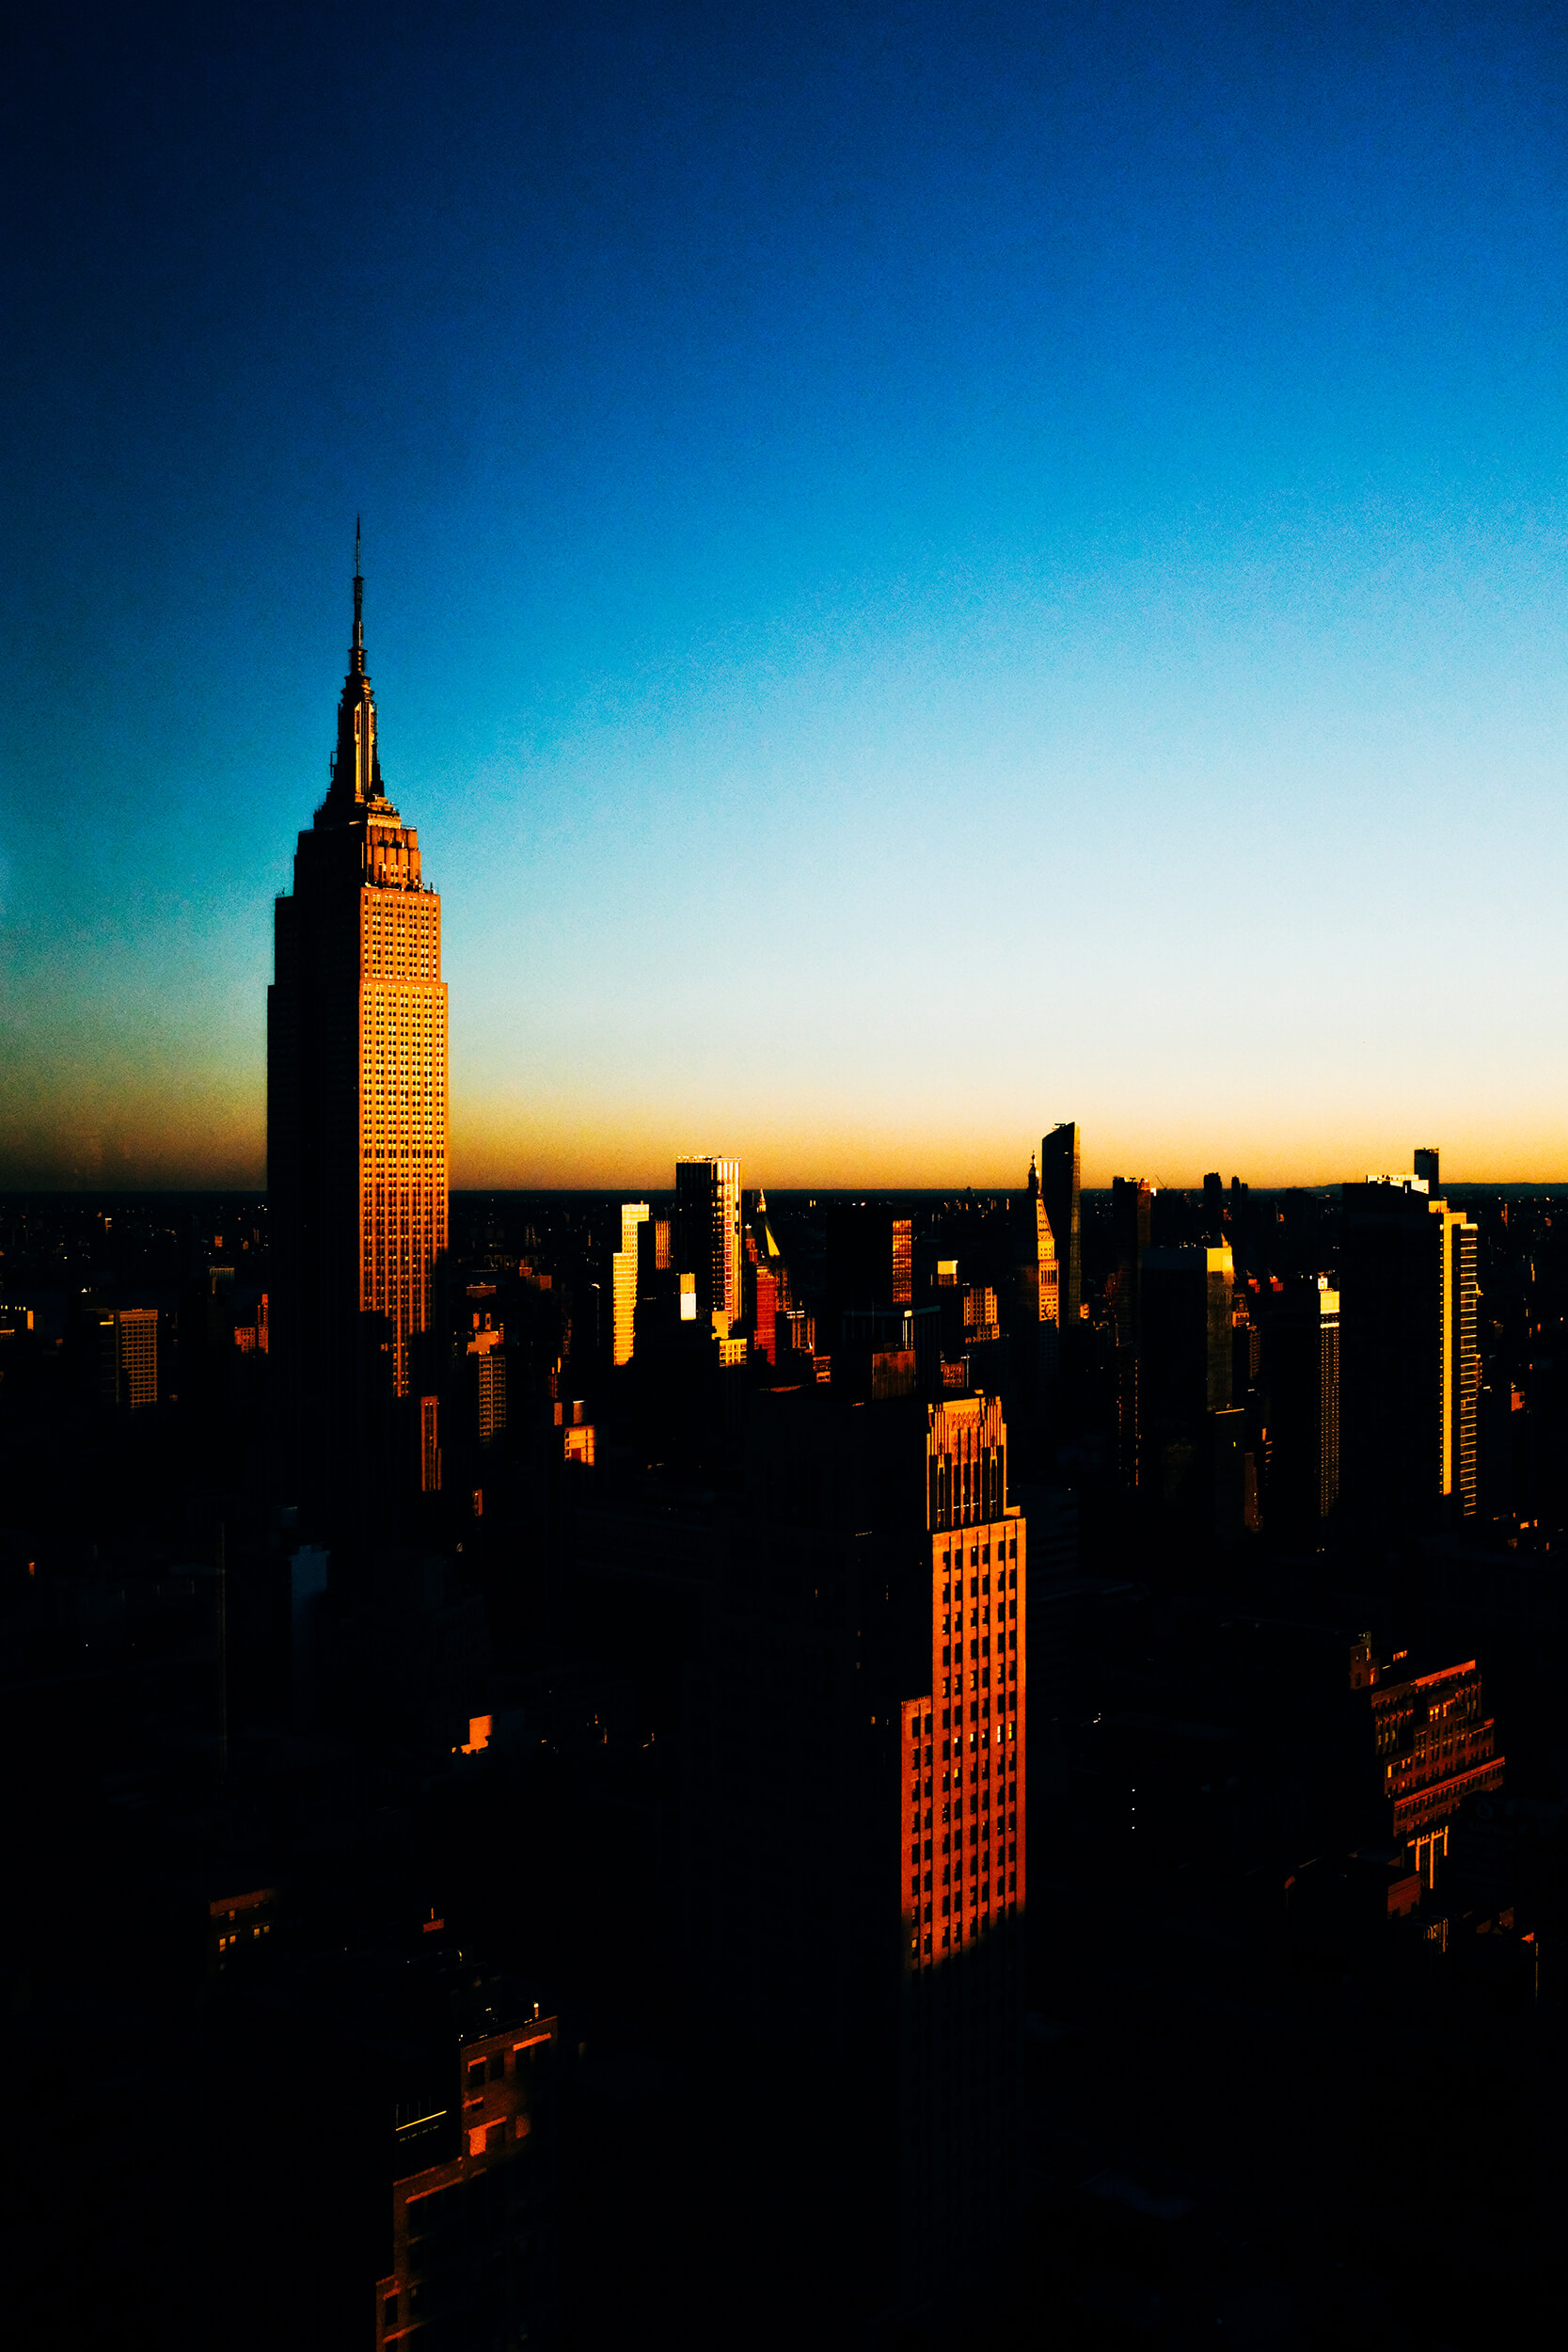 citylhouettes-empire-state-building.jpg